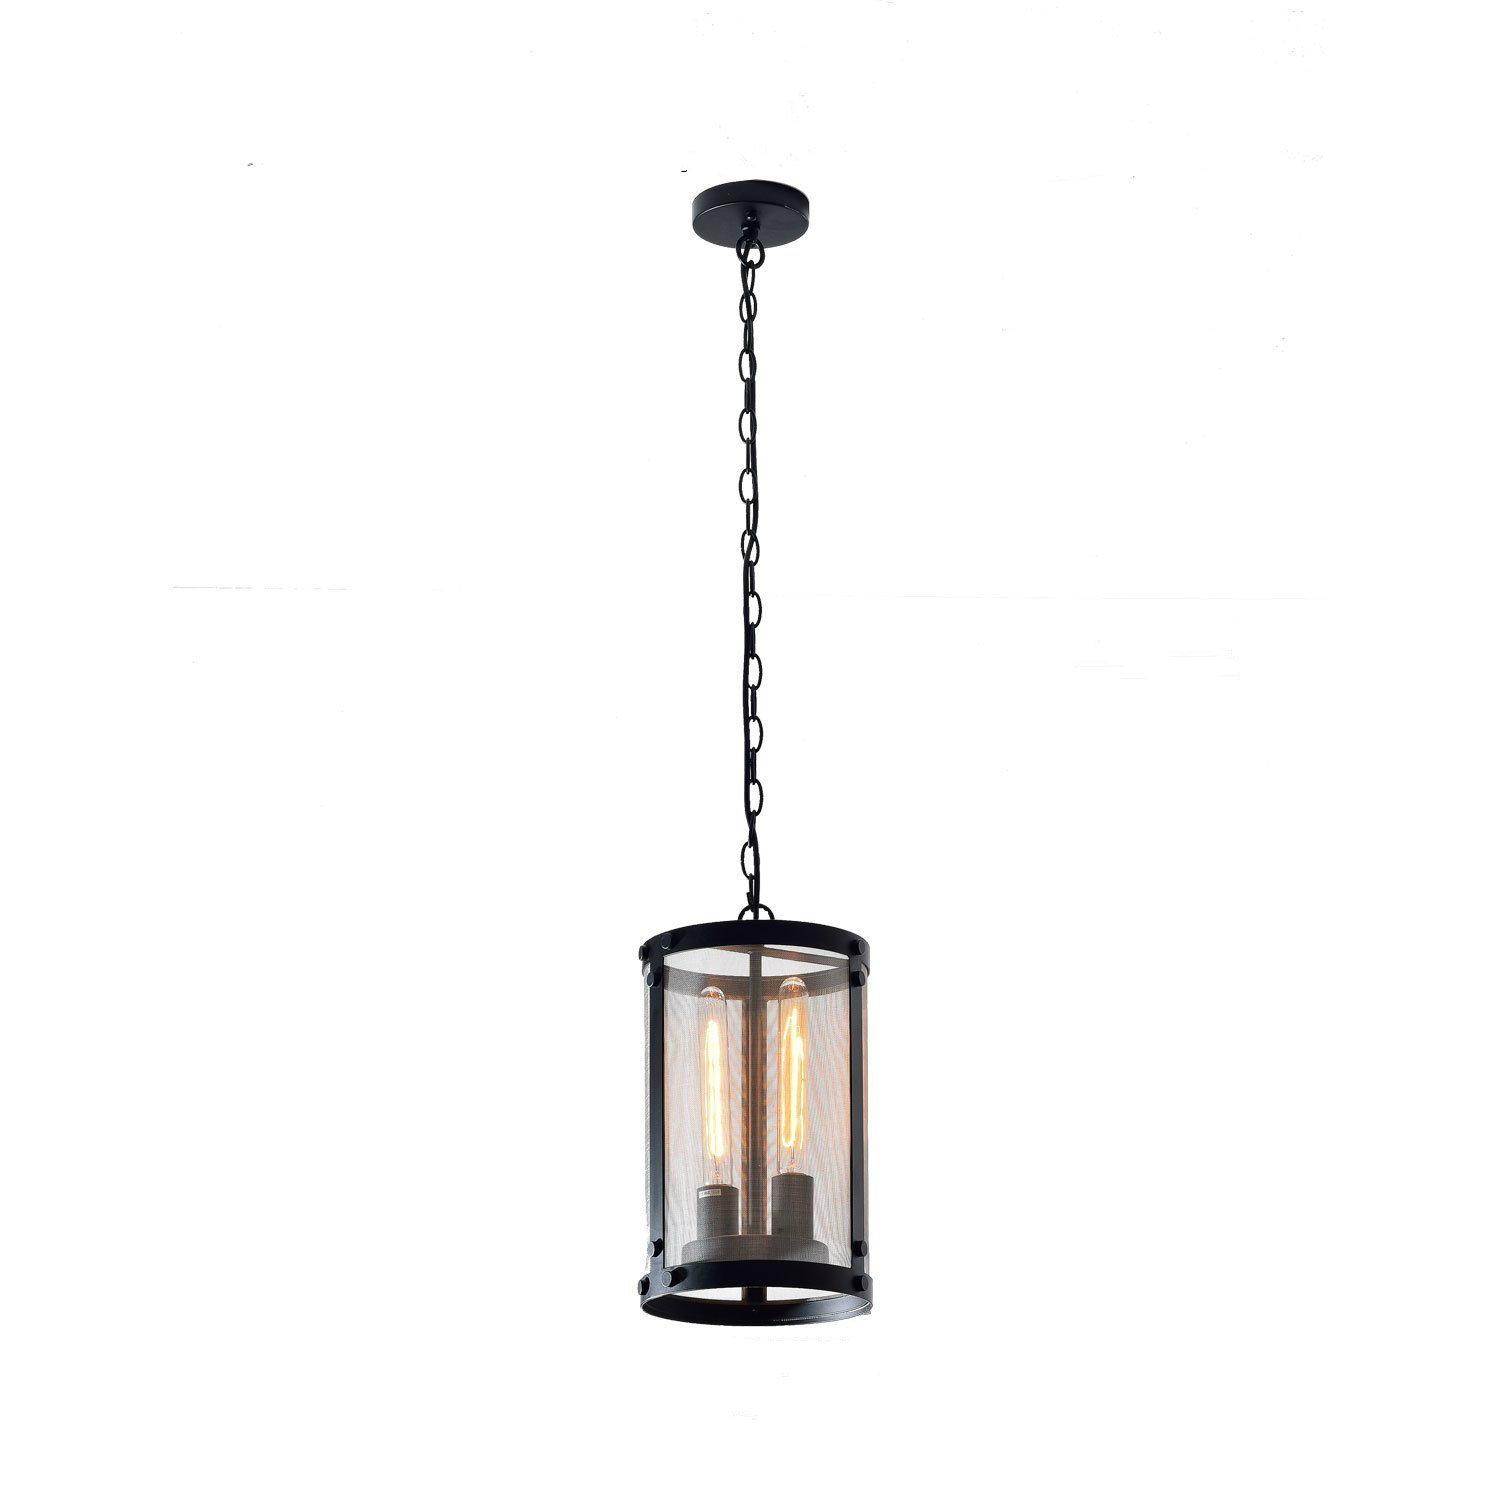 Vintage black industrial pendant light chandelier lighting chandeliers ceiling fixtures - Light fixtures chandeliers ...